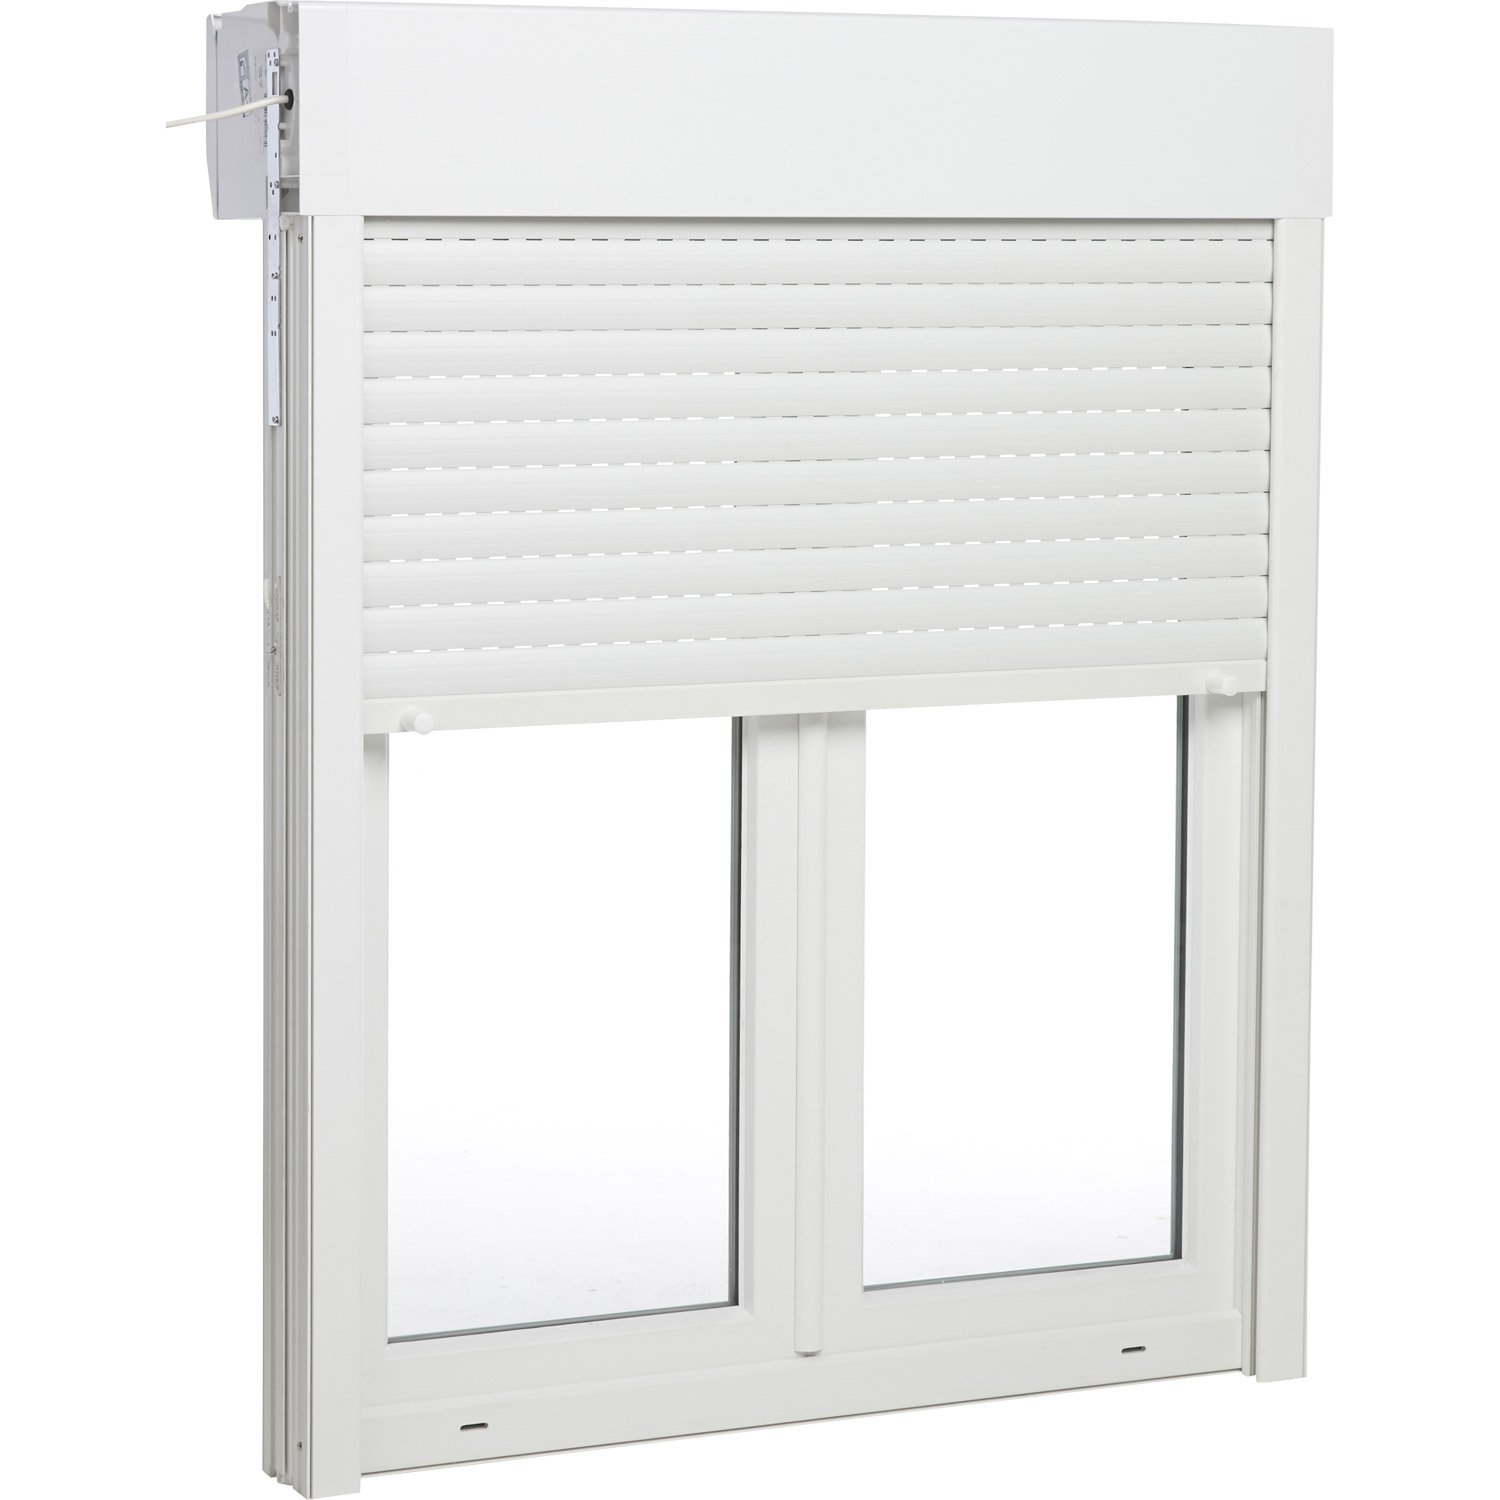 Accessoire volet pvc volet pvc porte fentre with for Volet battant pvc brico depot